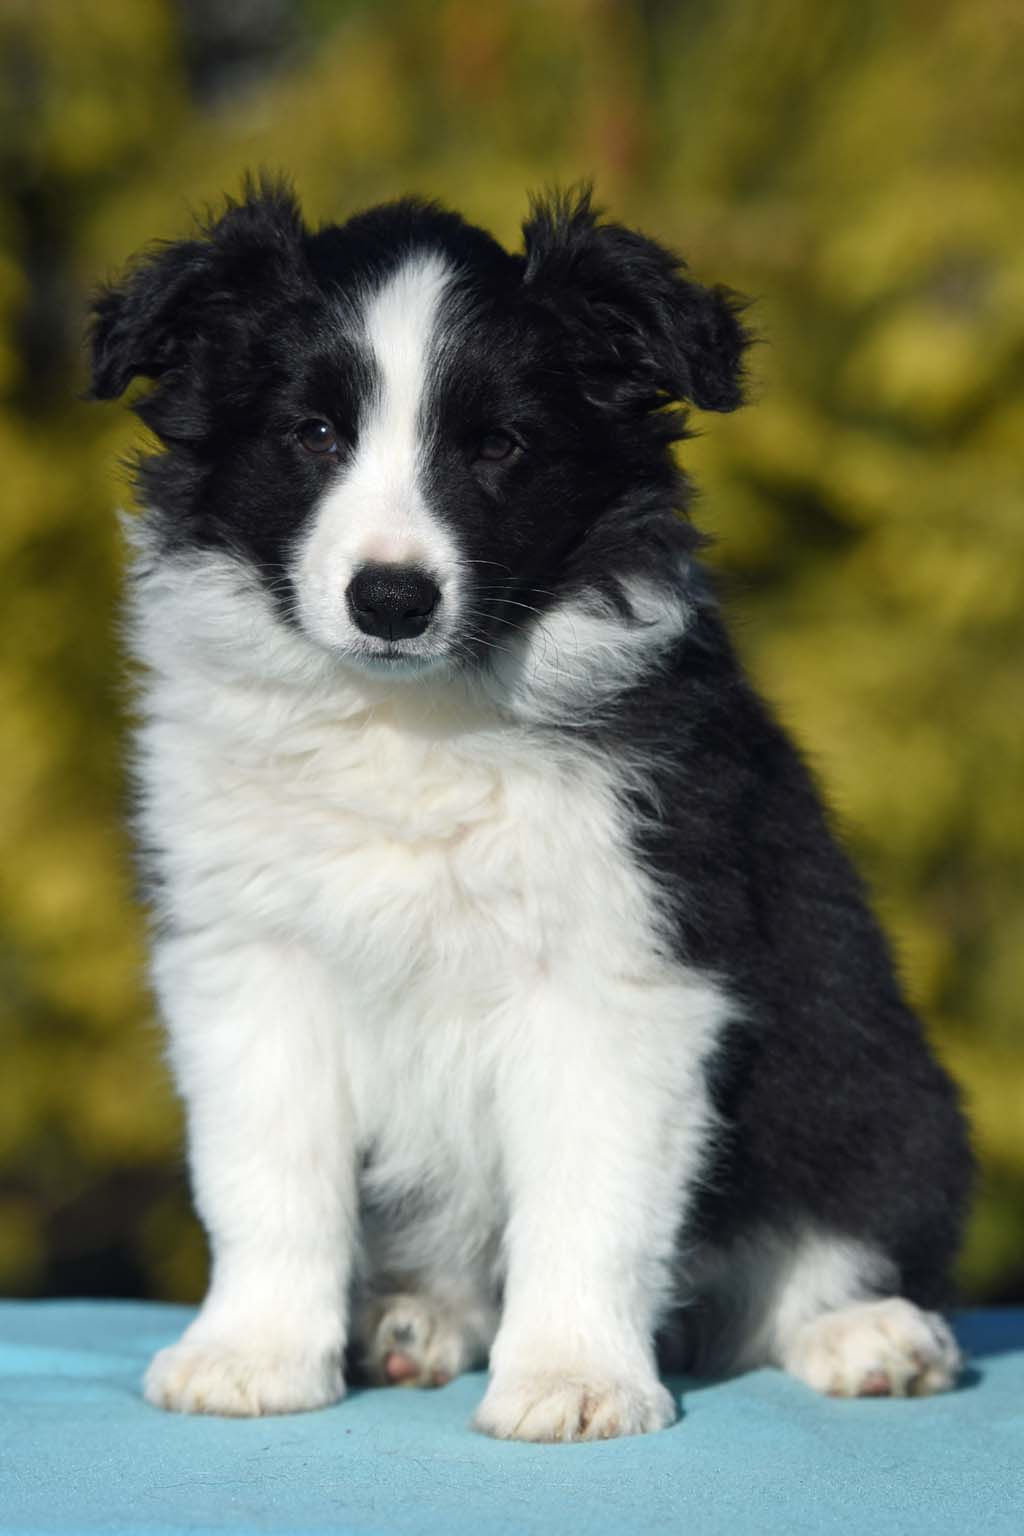 2015 12 28 Just the one and only von den Traumpfoten DSC 3823